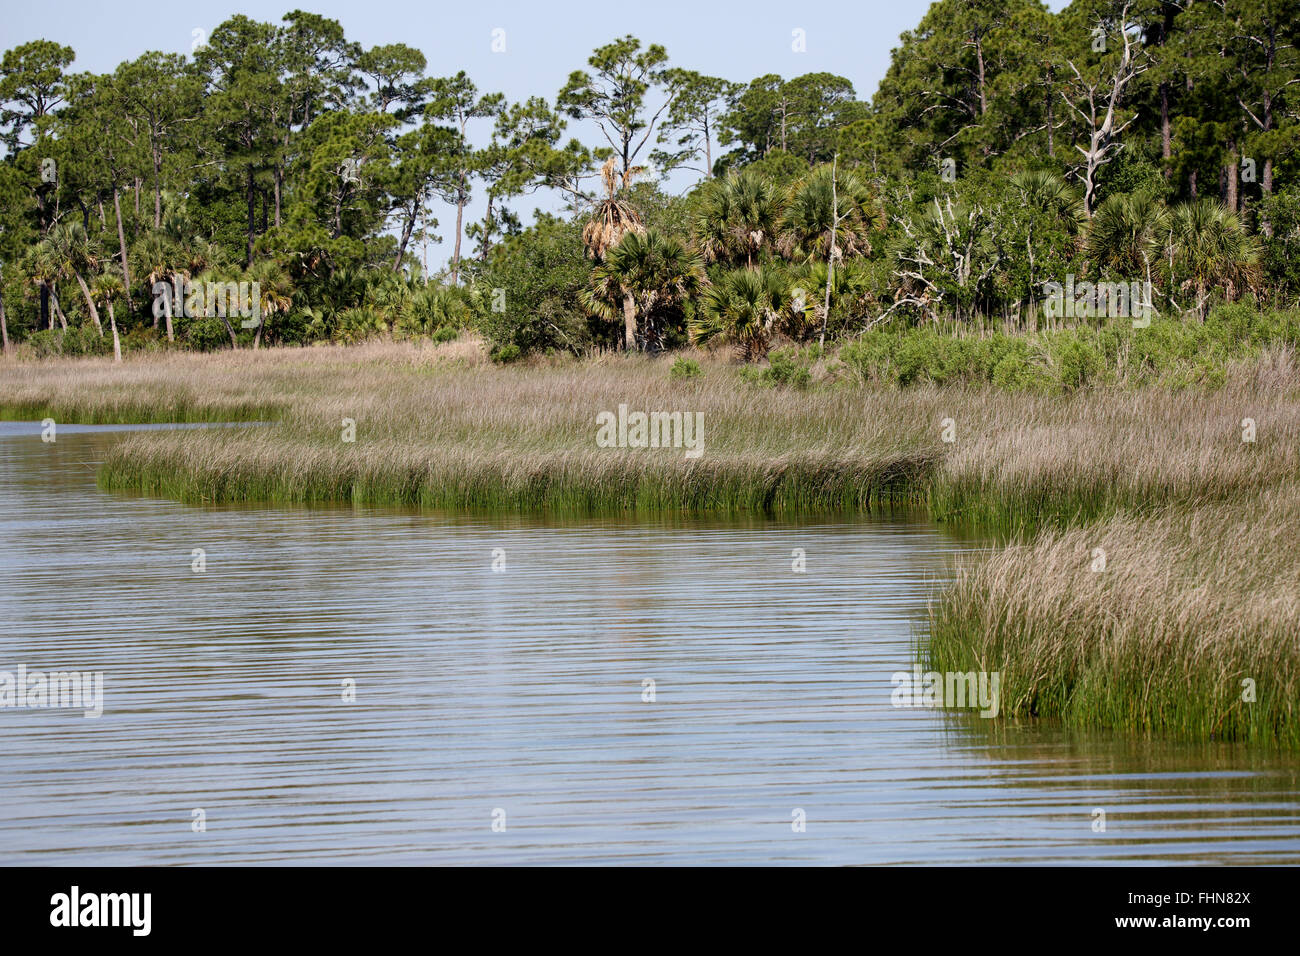 Apalachicola Bay on a still day - Stock Image